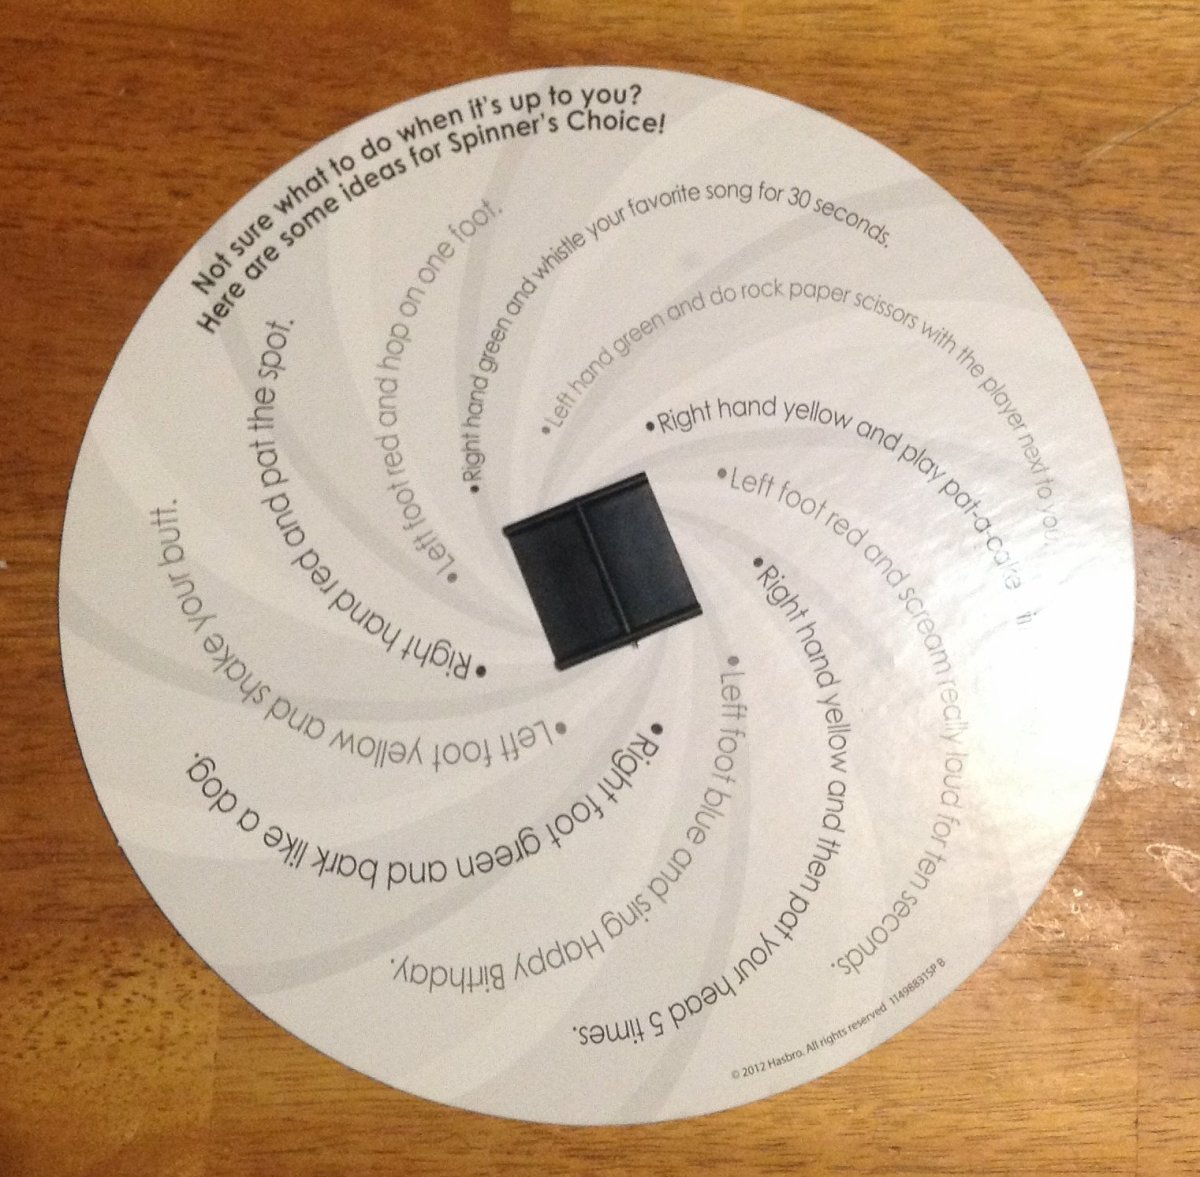 This is the back of the spinner. It provides some fun ideas to call out for Spinner's Choice!